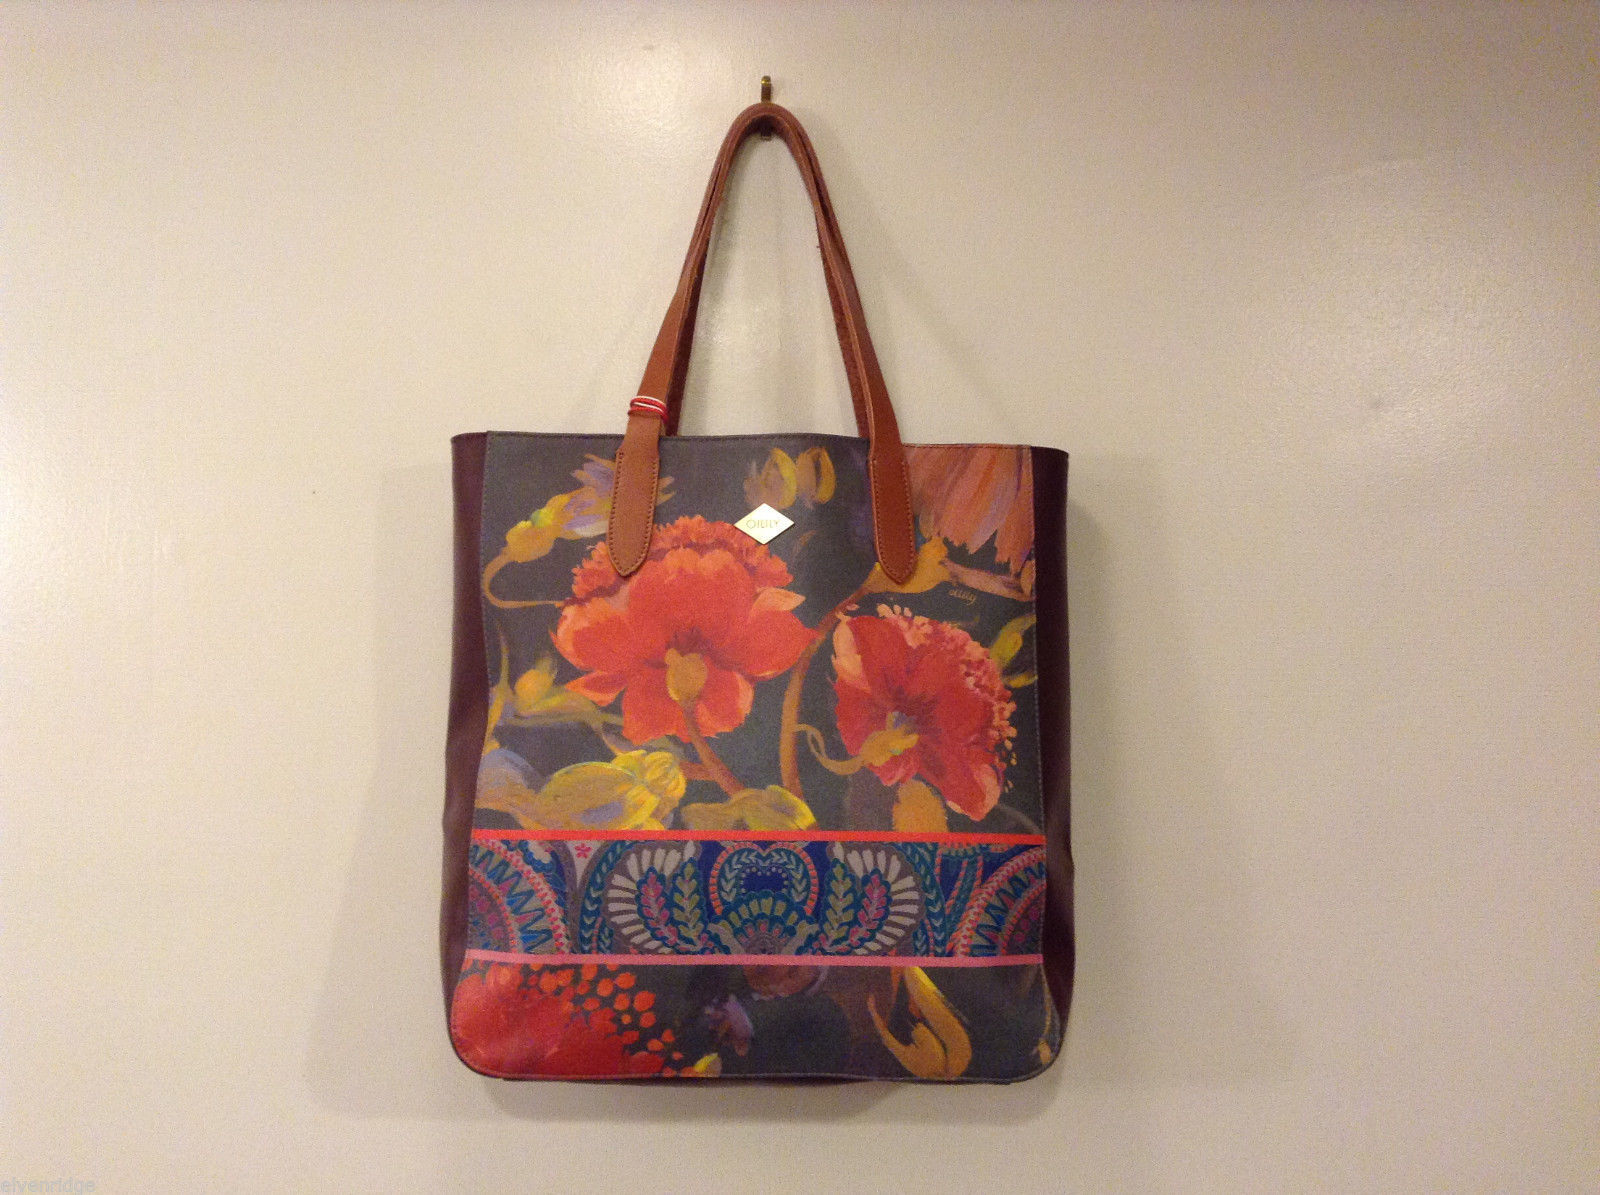 Oilily Leather Tote Painted Flowers Shopper Handbag - Multicolor - NEW